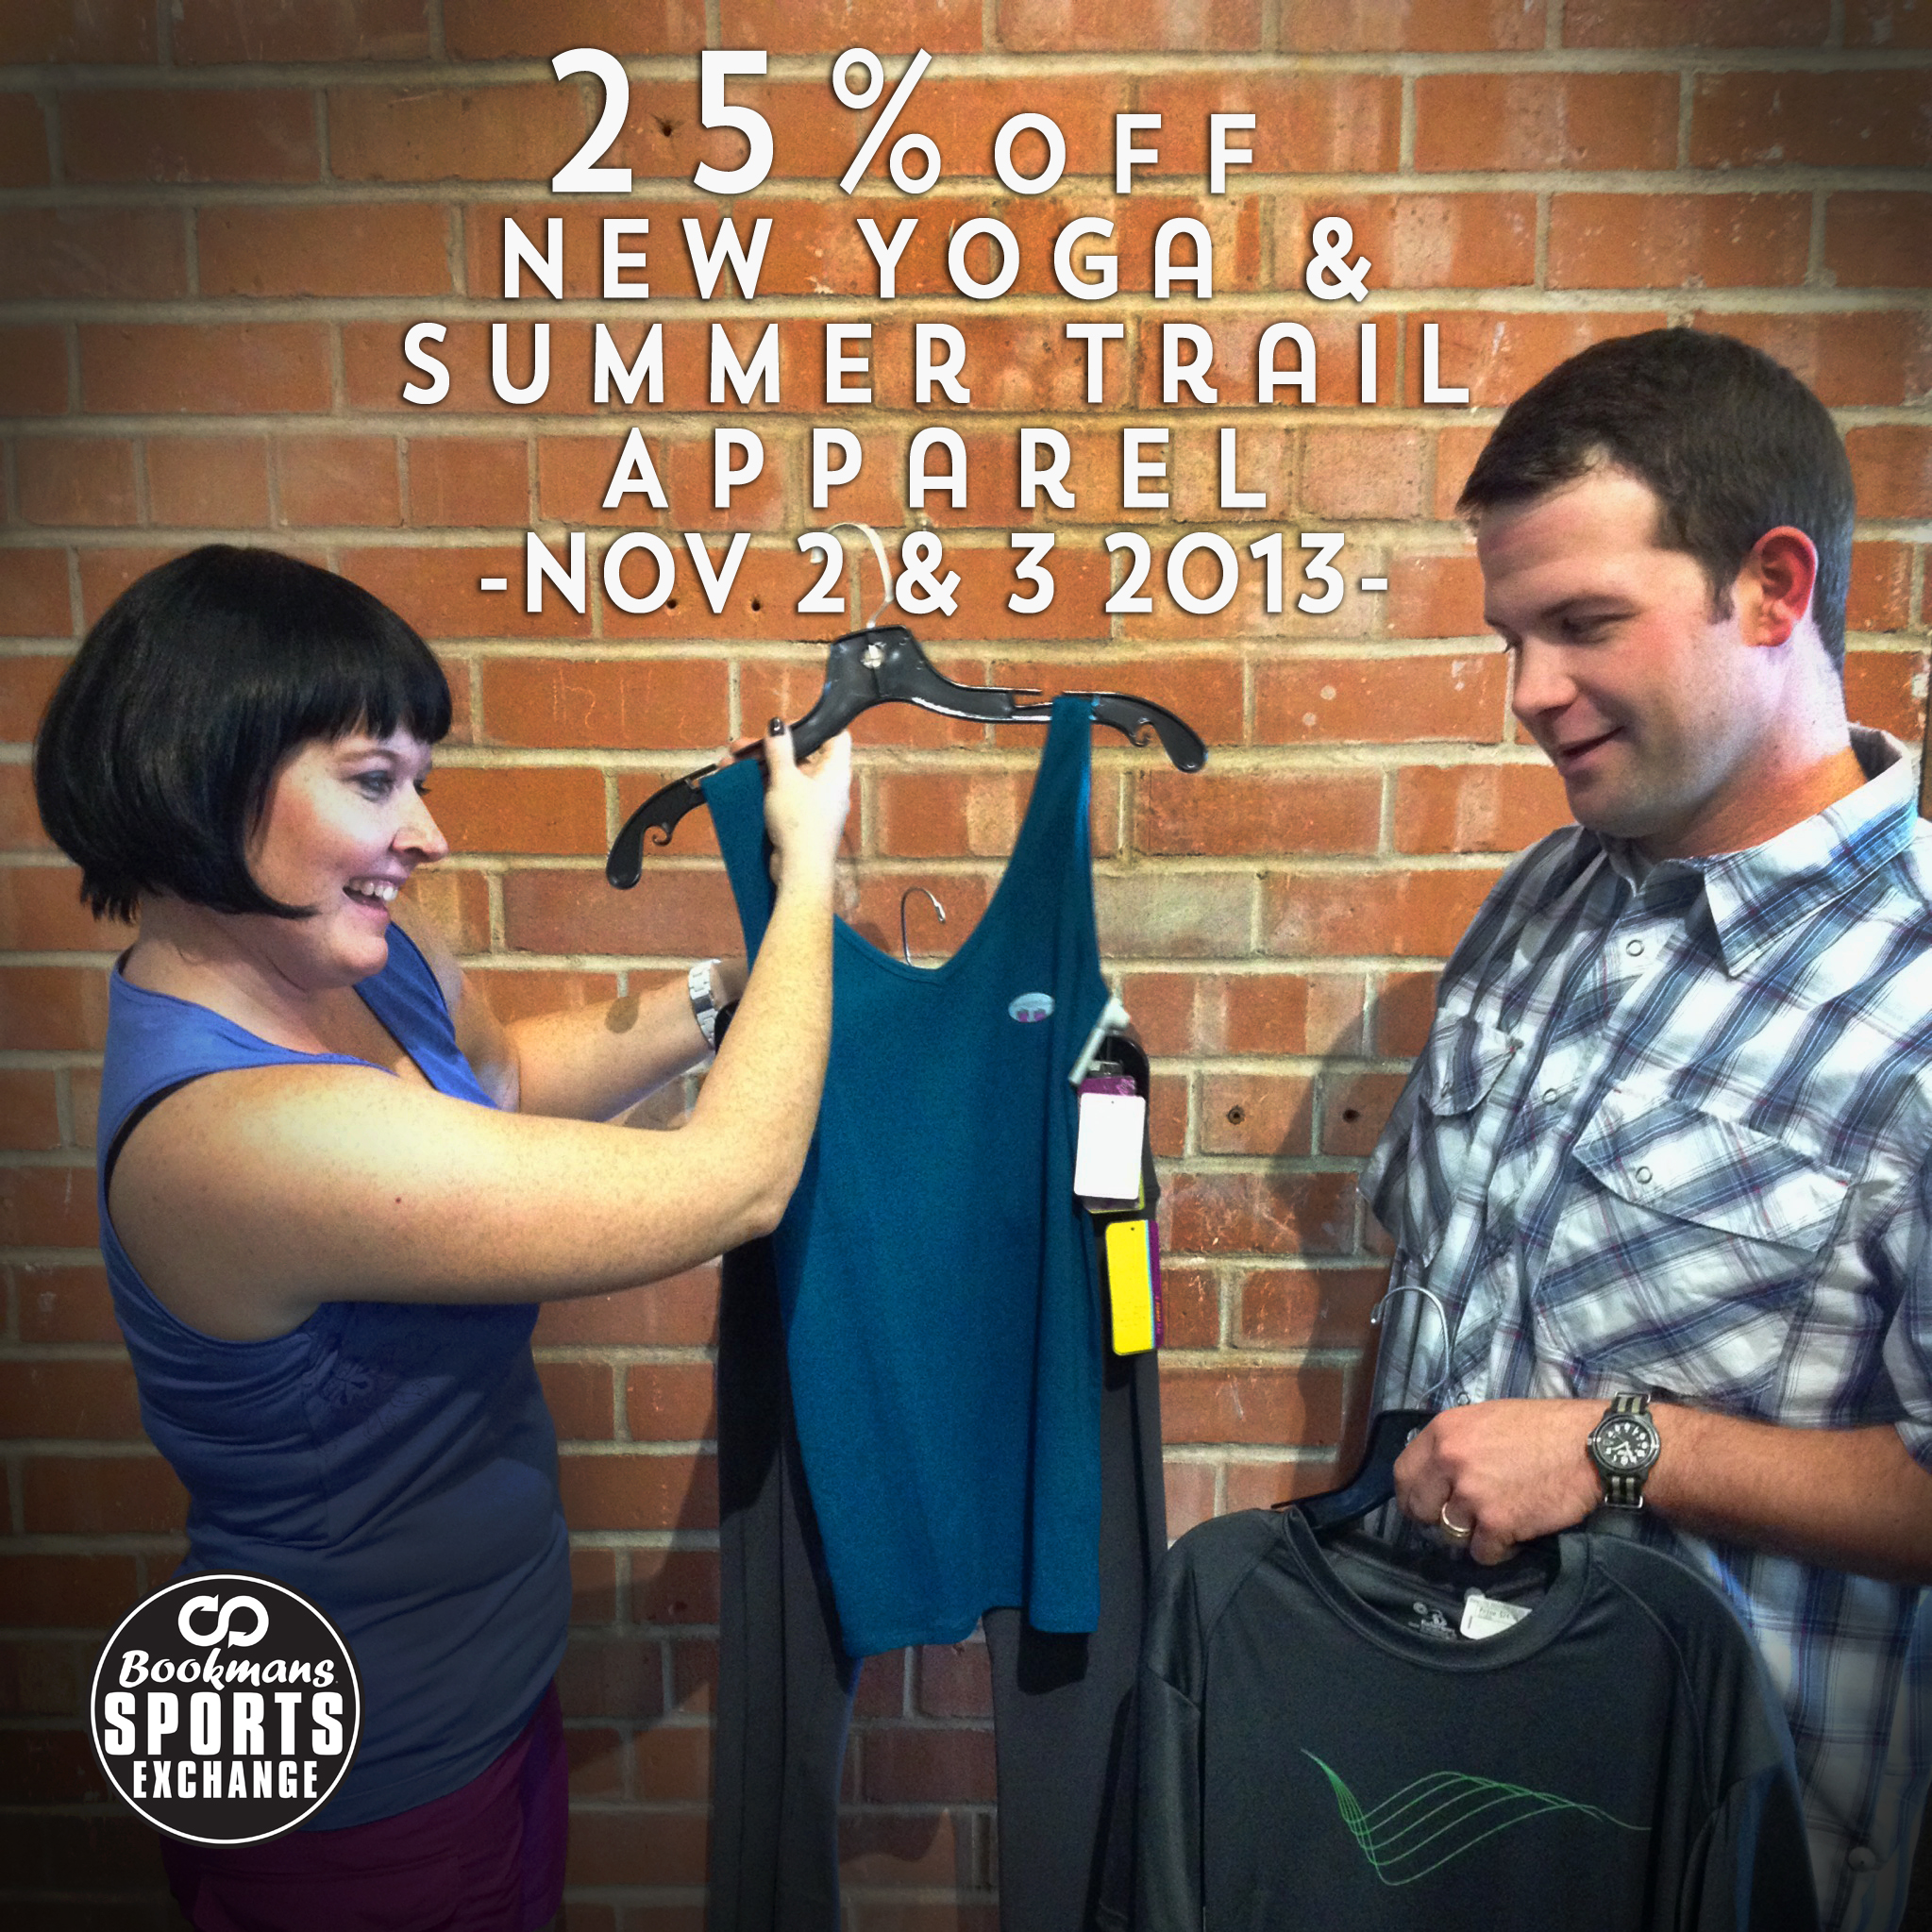 New Yoga and Summer Hiking Apparel Sale - Bookmans Sports ... - photo#18